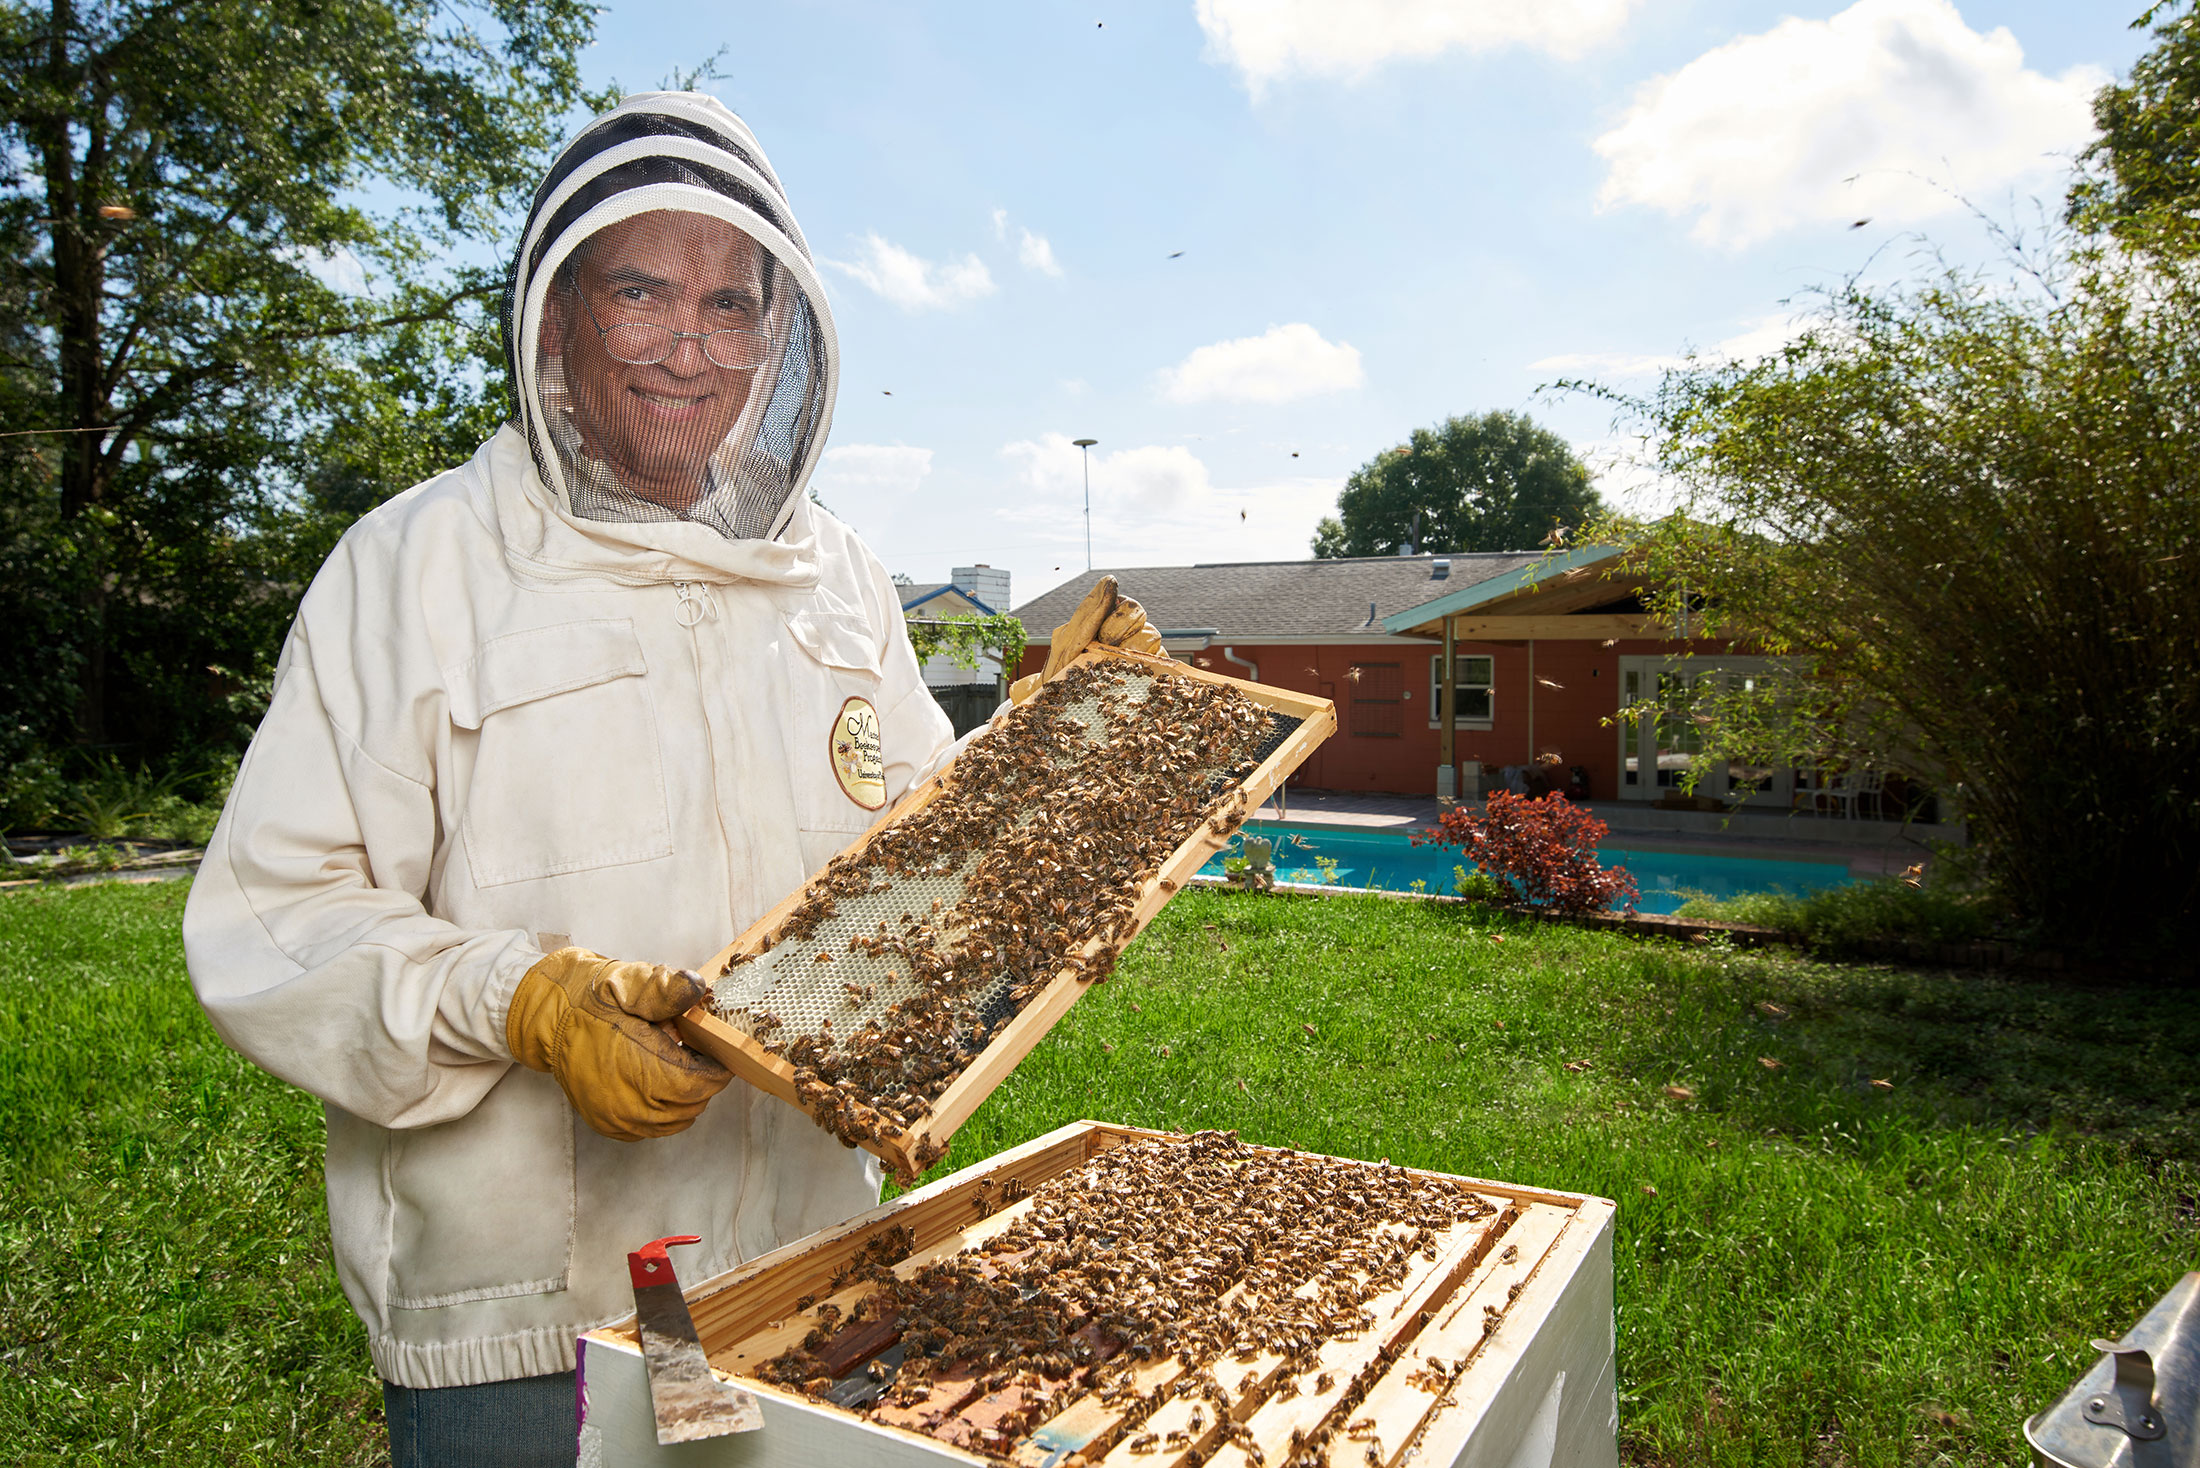 editorial_photography_edible_orlando_beekeeping_portrait